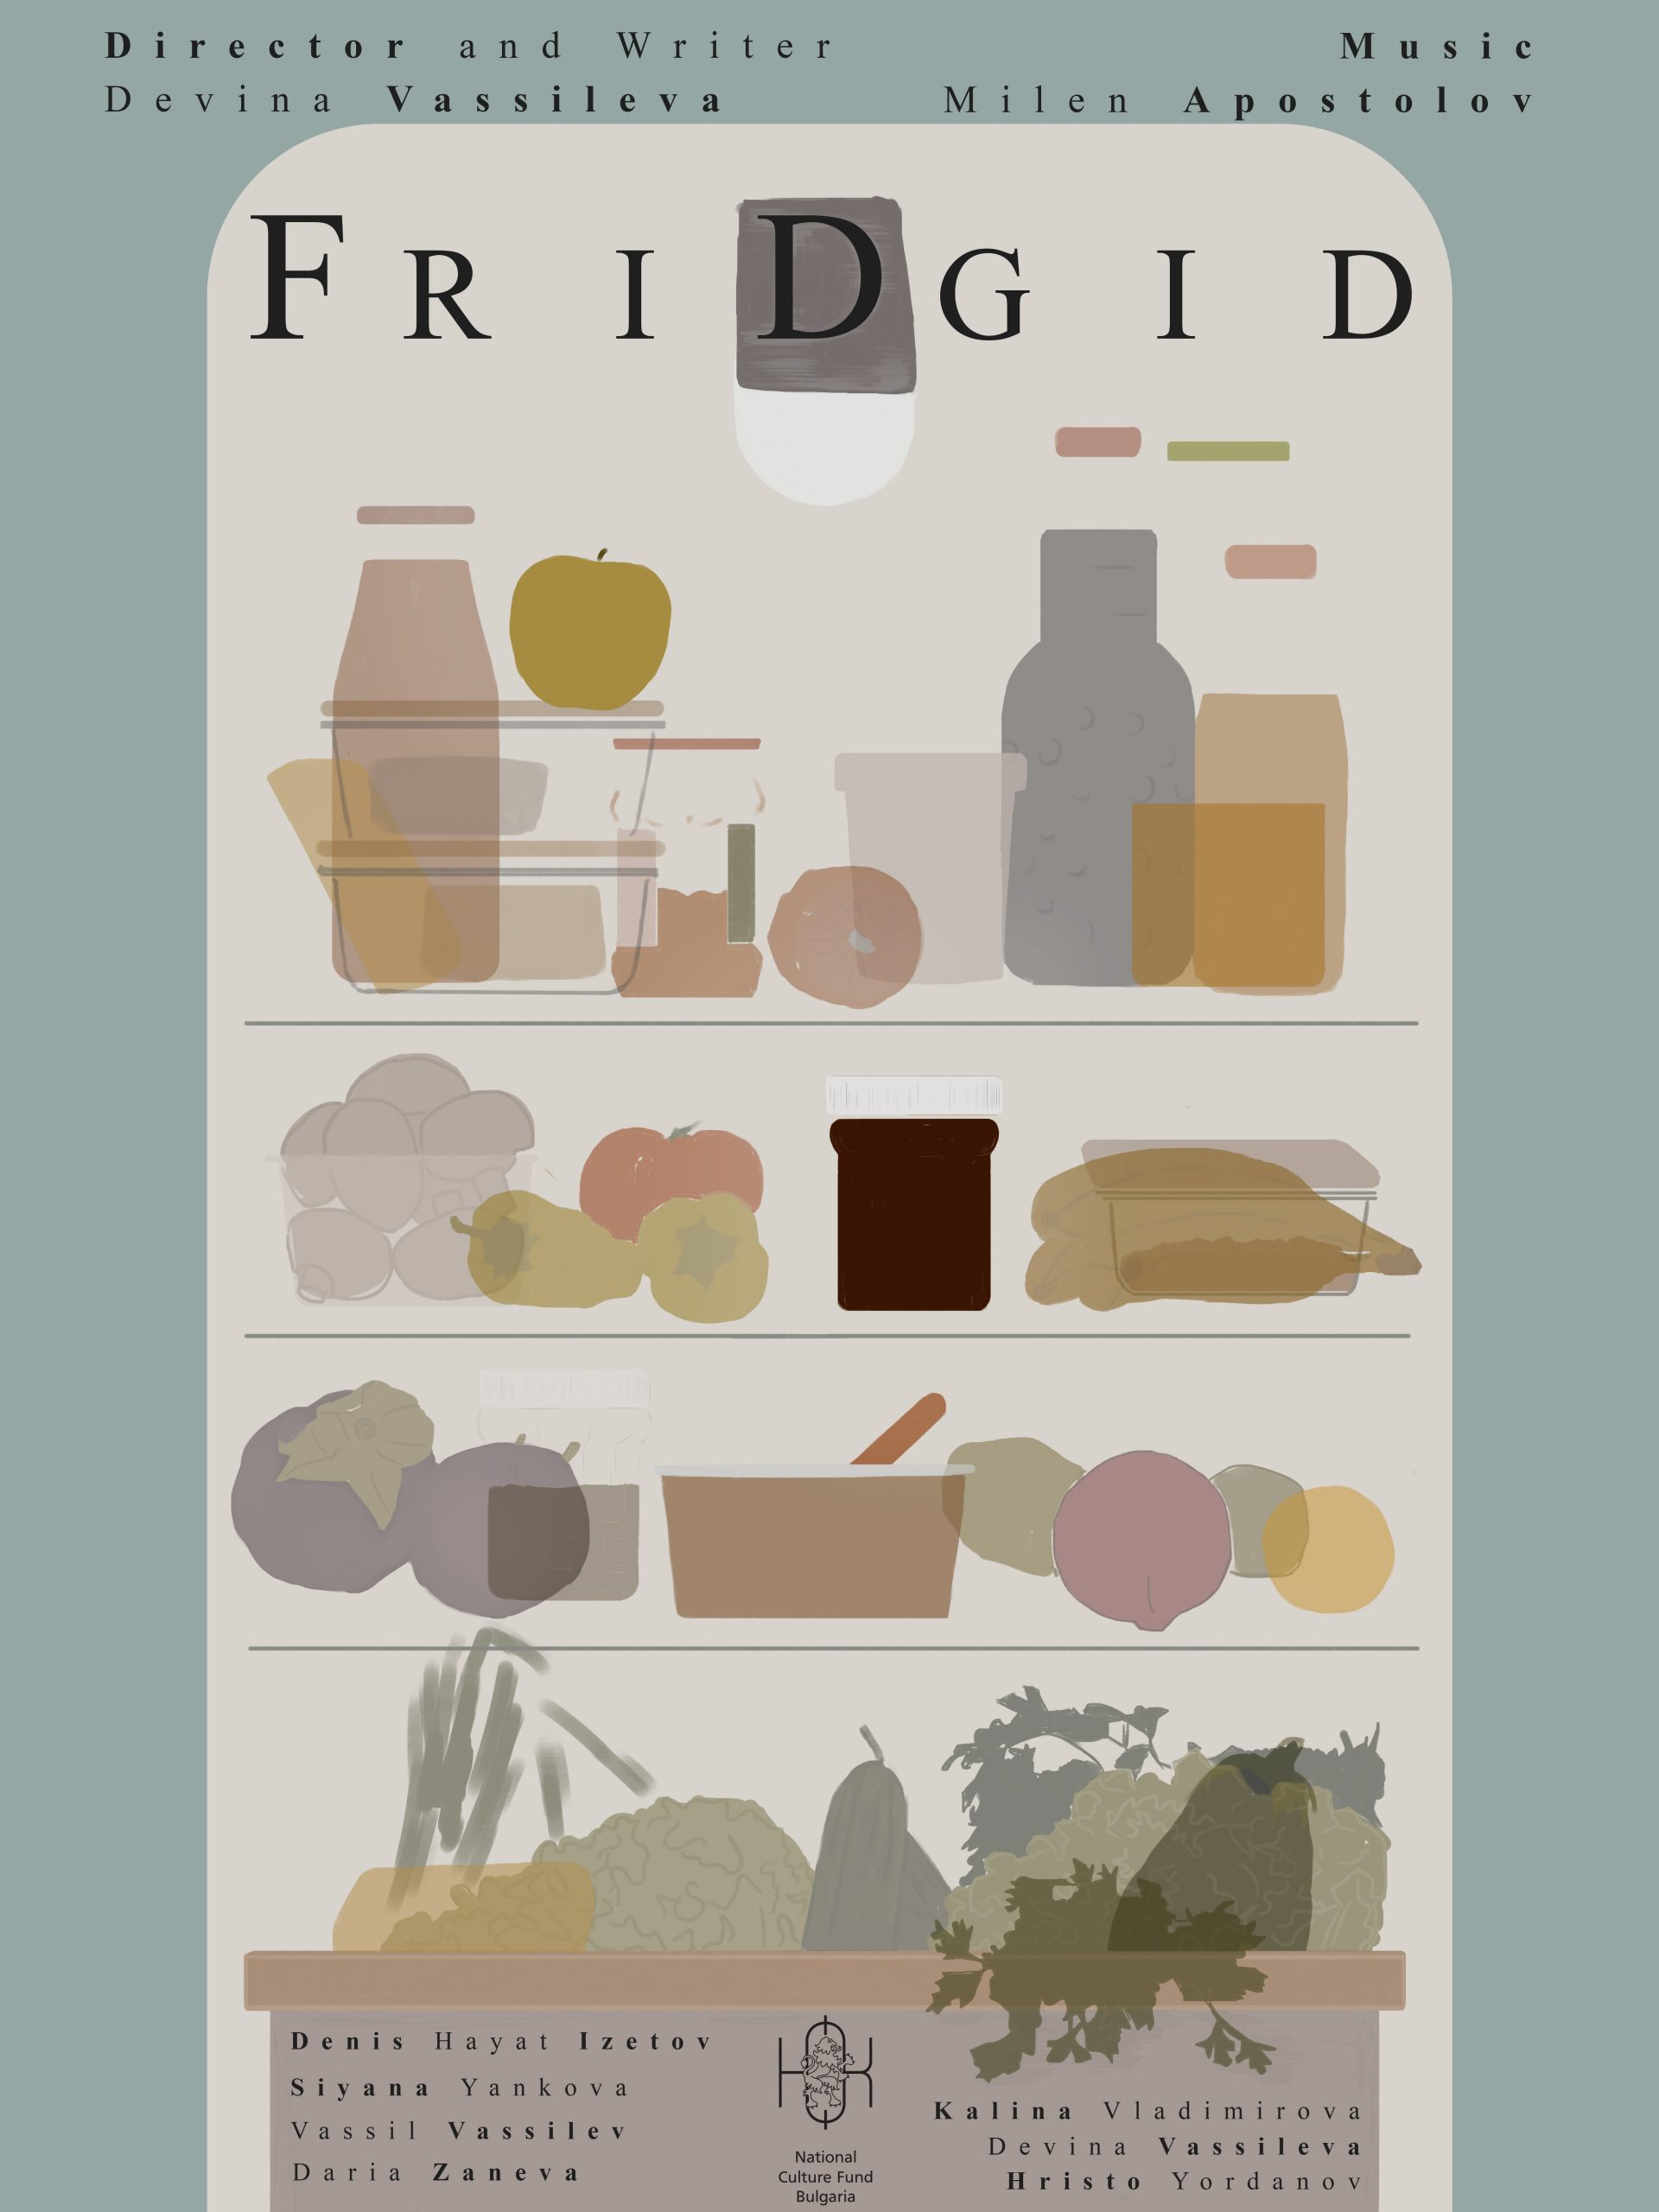 Come to the premiere of 'FriDgid' by Devina Vassileva!